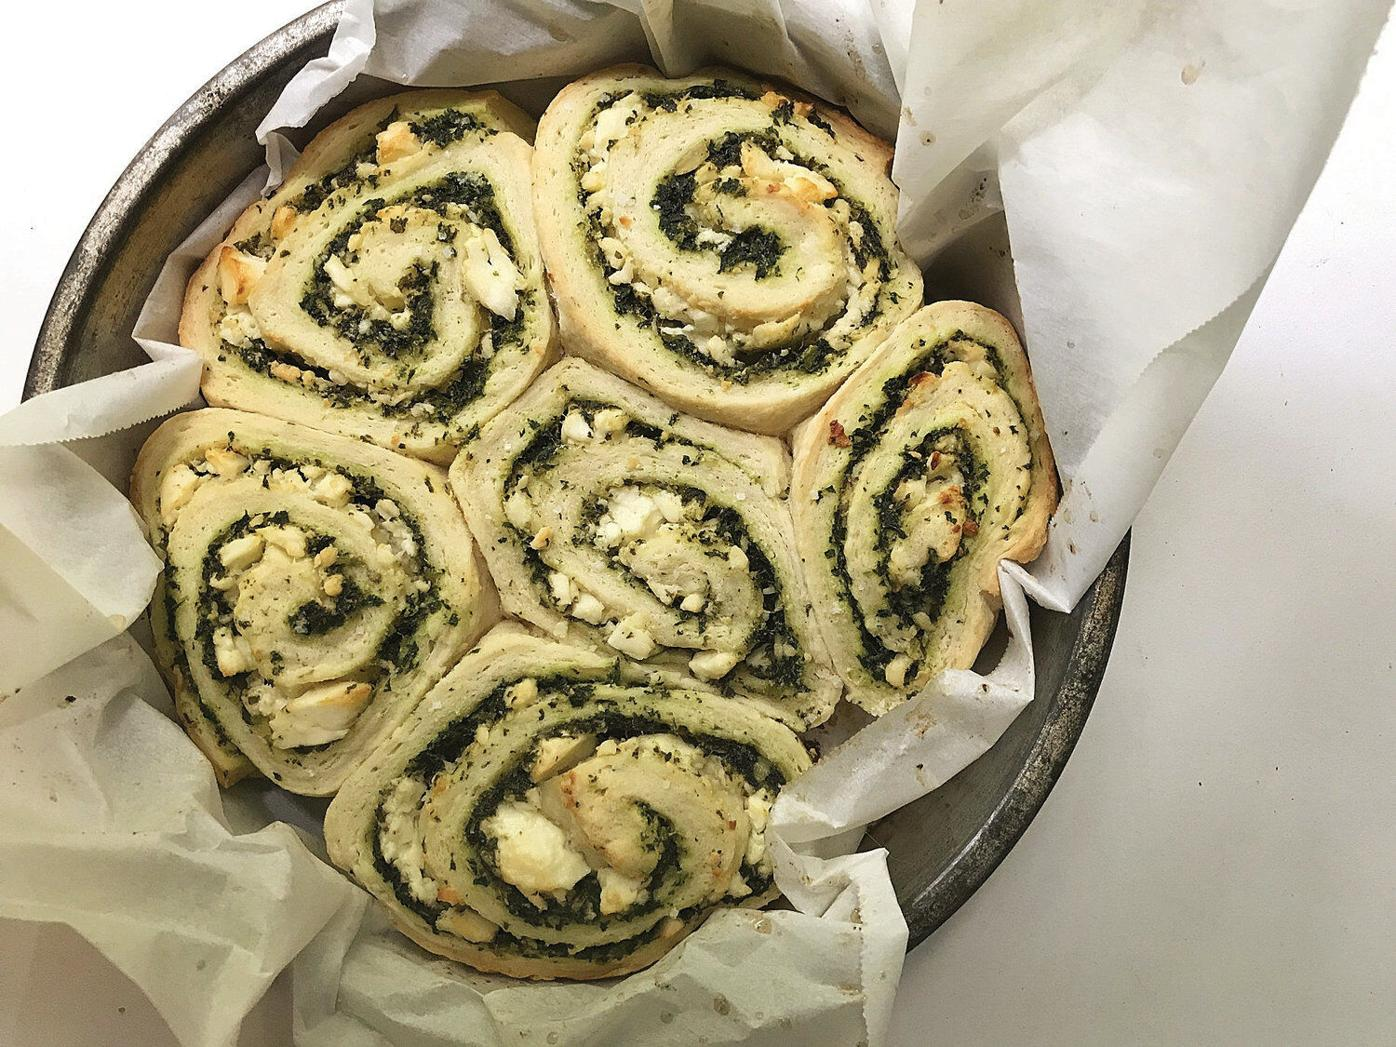 Spinach Feta Savory Rolls: Try making the latest trend - savory rolls